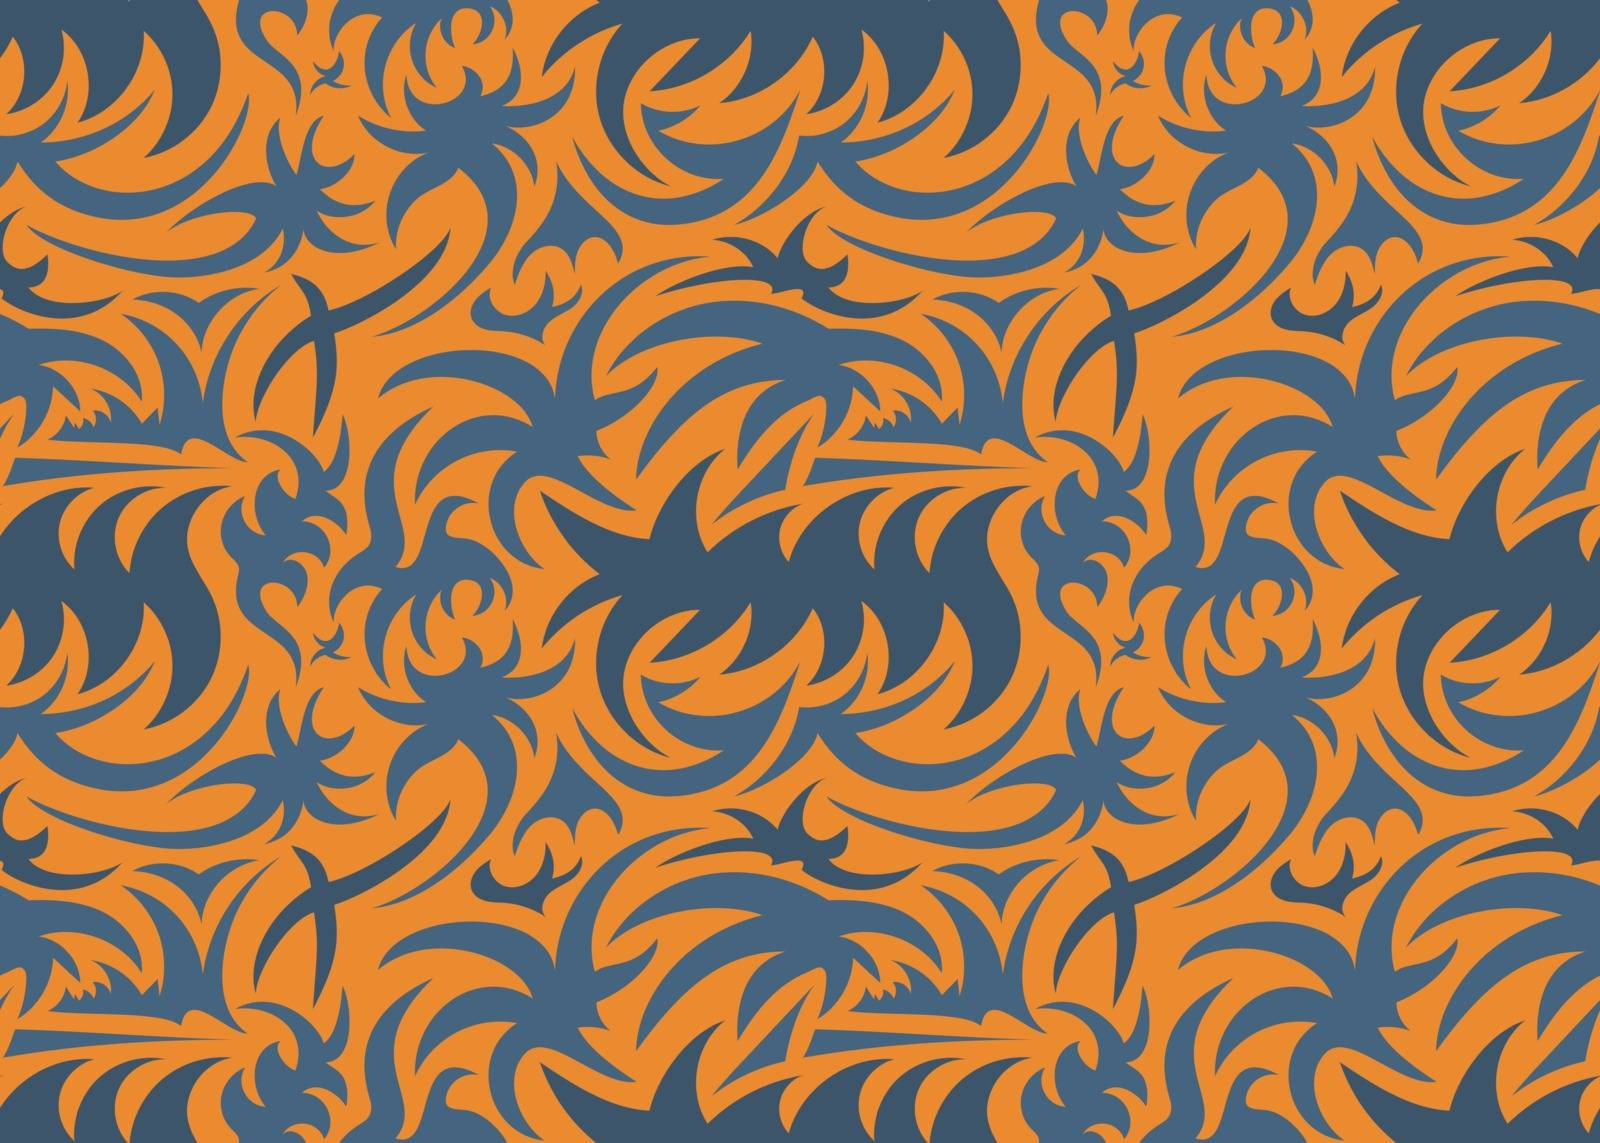 5 color abstract seamless thorny organic pattern. grey, orange and red and tones. vector illustration